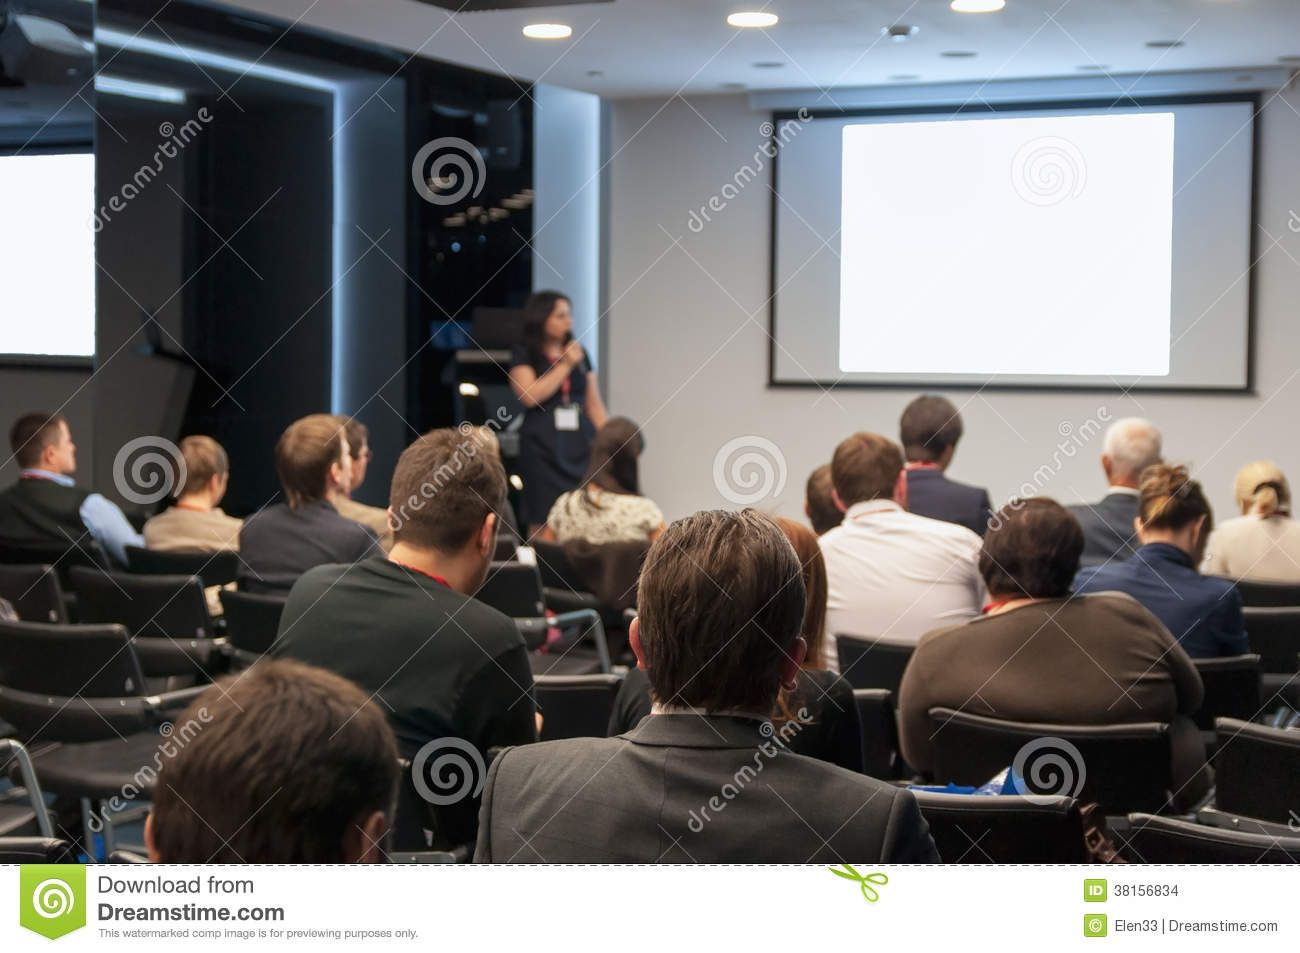 Business Conference - Download From Over 39 Million High Quality Stock Photos, Images, Vectors. Sign up for FREE today. Image: 38156834